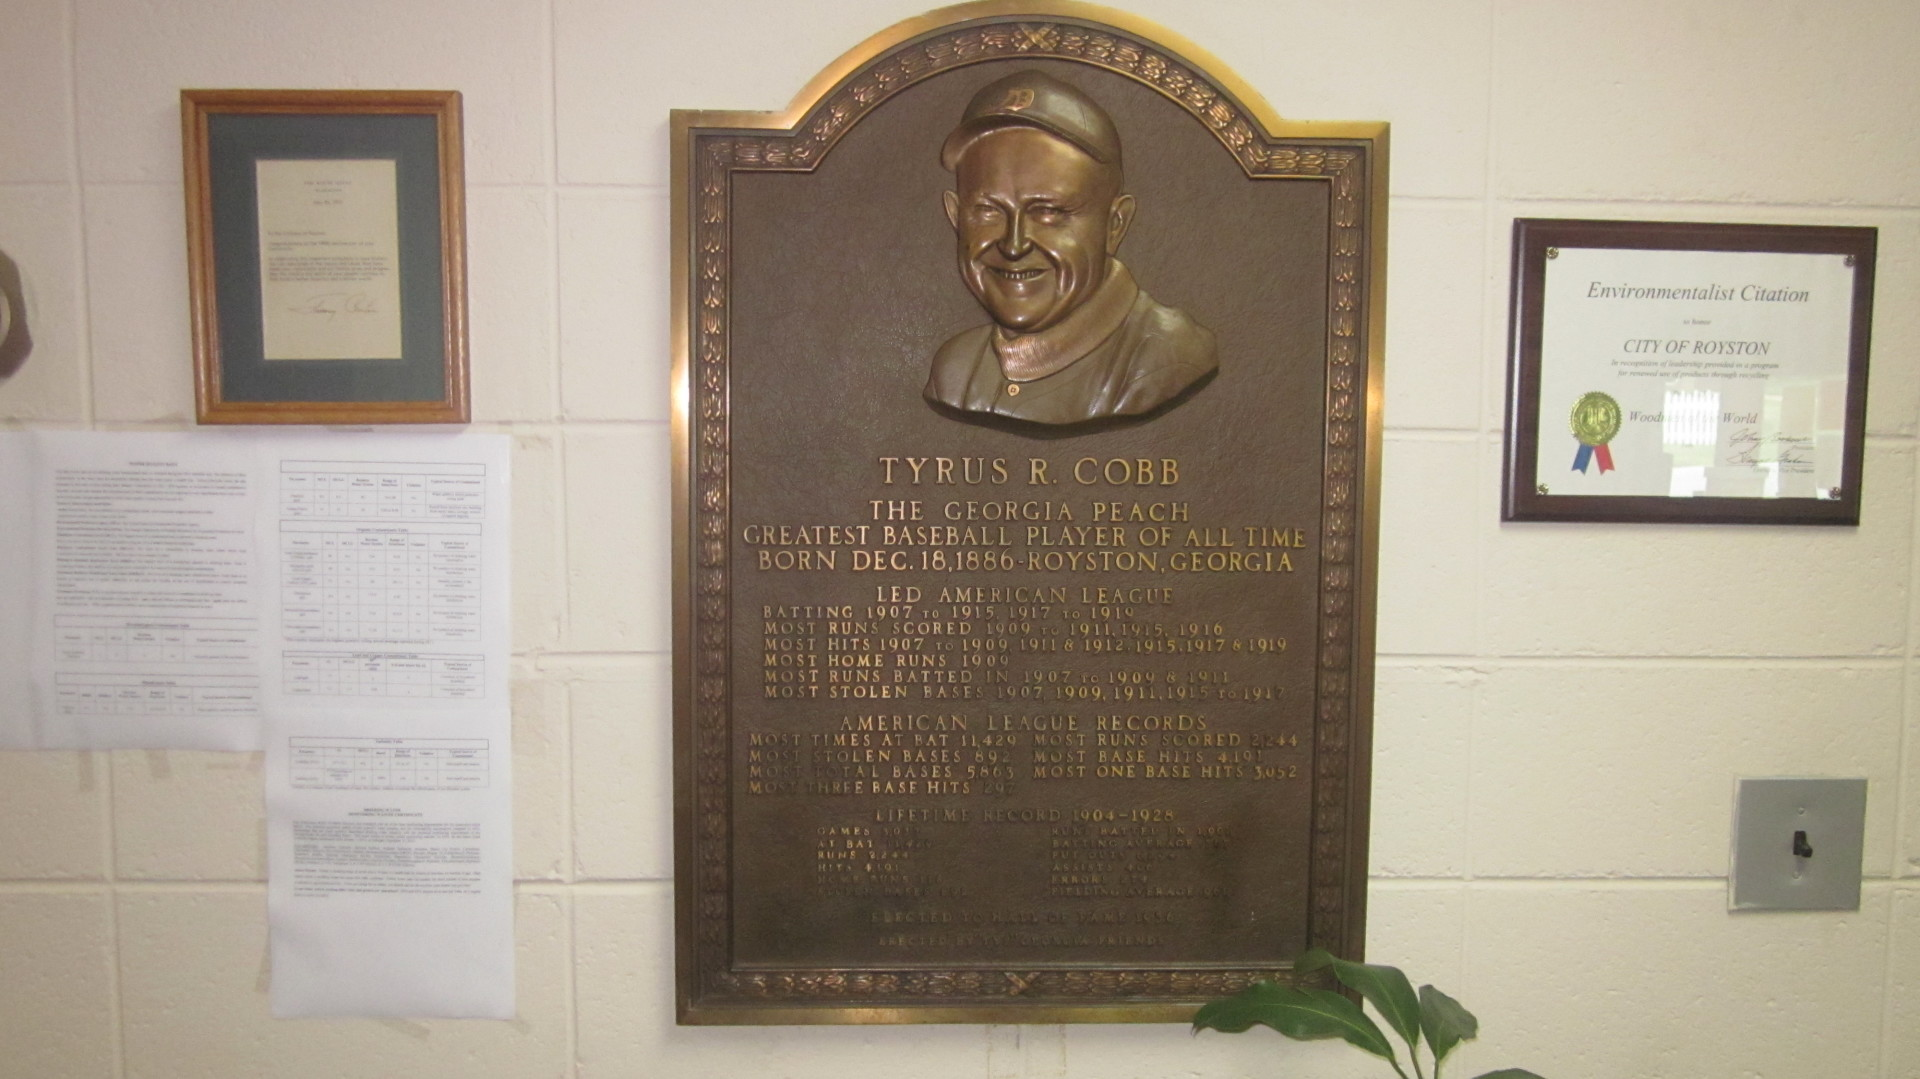 Ty Cobb plaque in City Hall Royston, Georgia